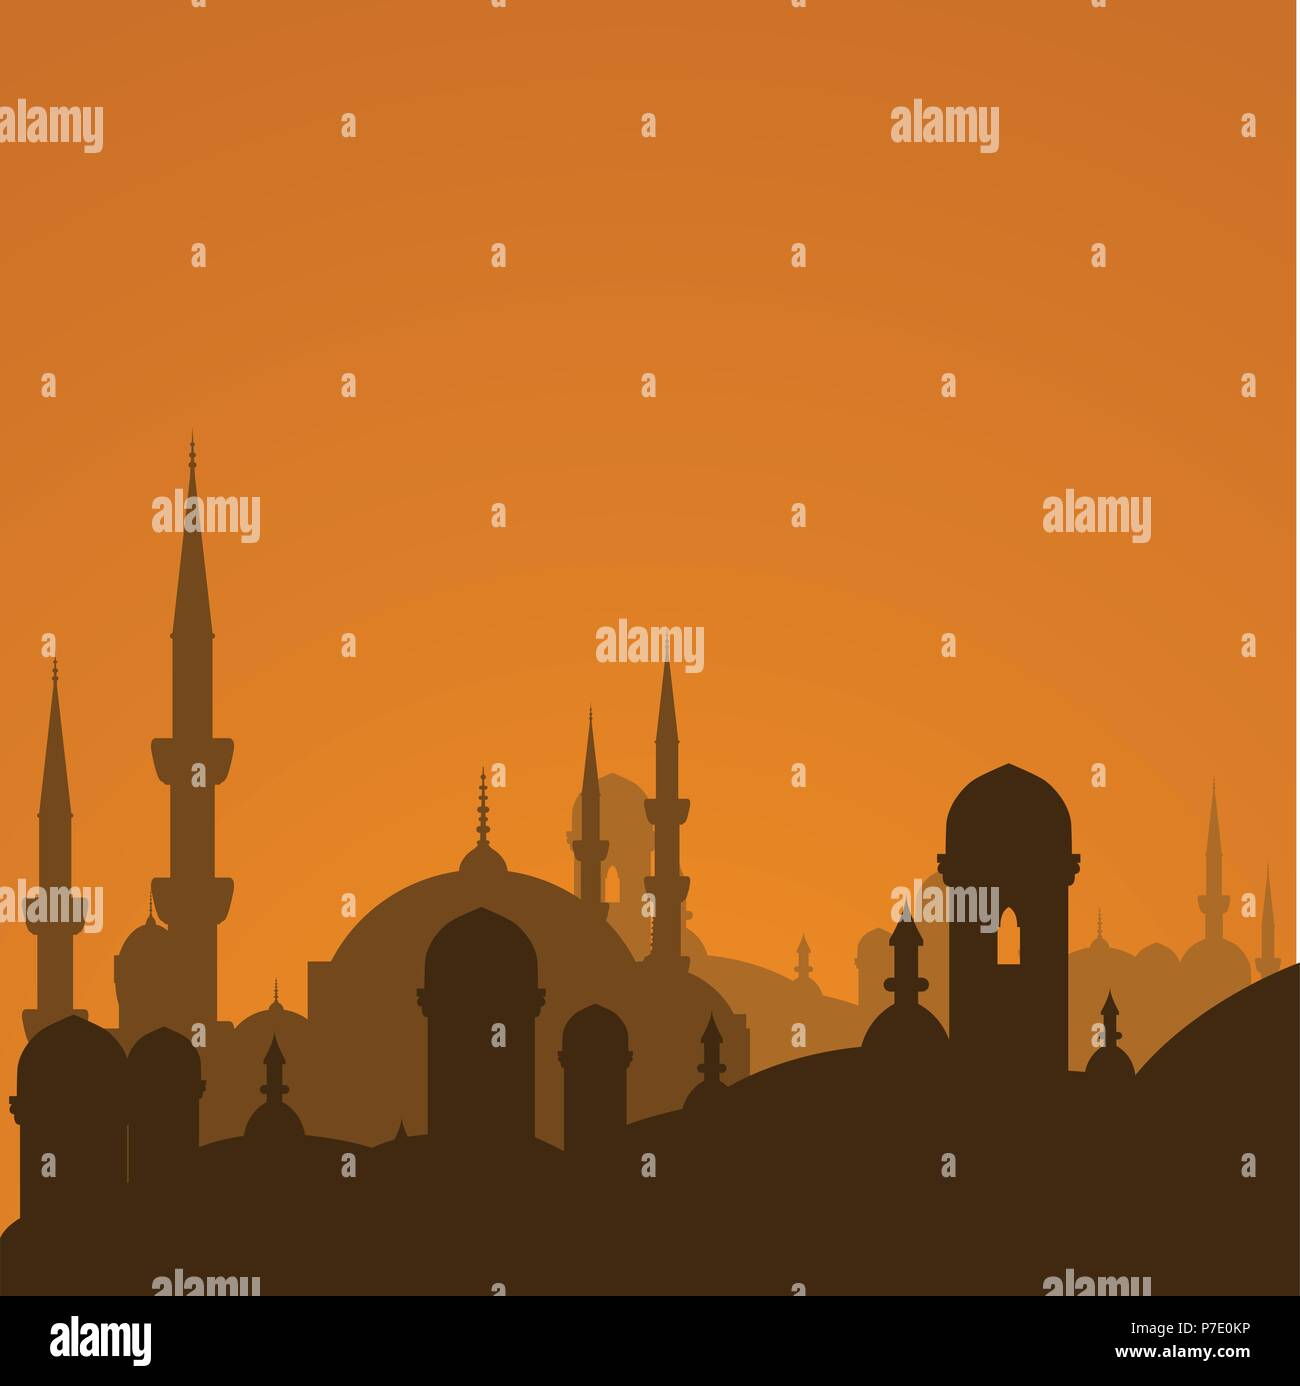 Arabic cityscape with mosque silhouette - Istanbul cityscape - Stock Vector